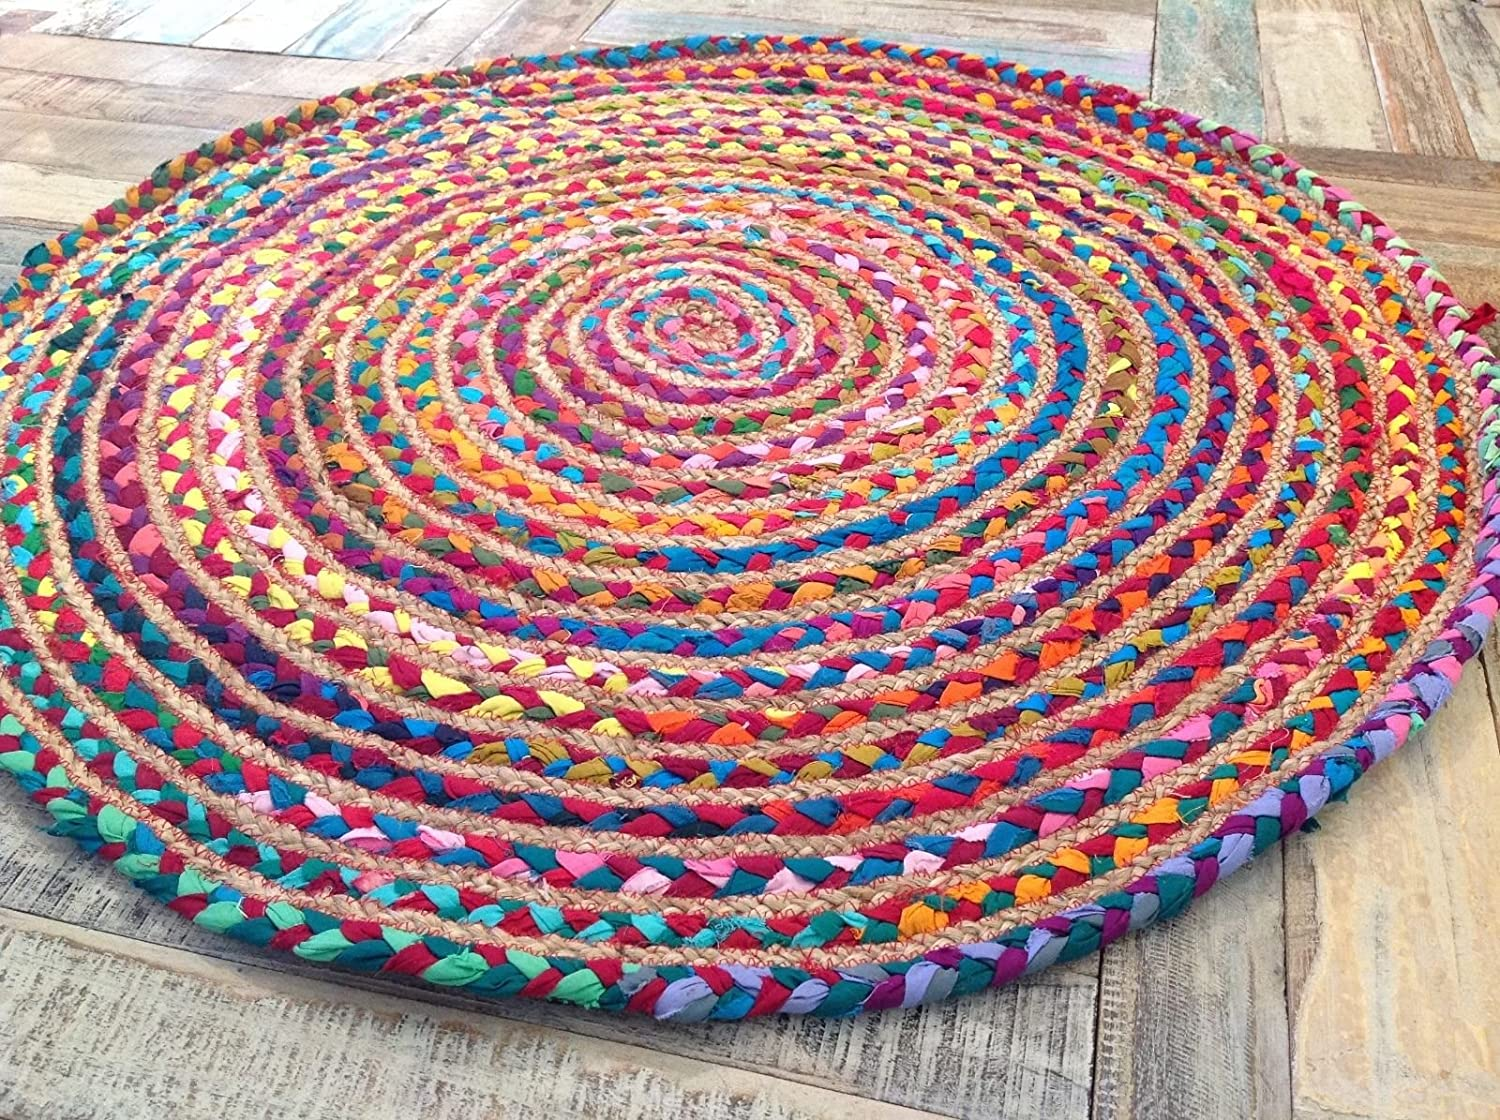 of the retro look shaggy under a circle rugs s rug it table coffee circular round